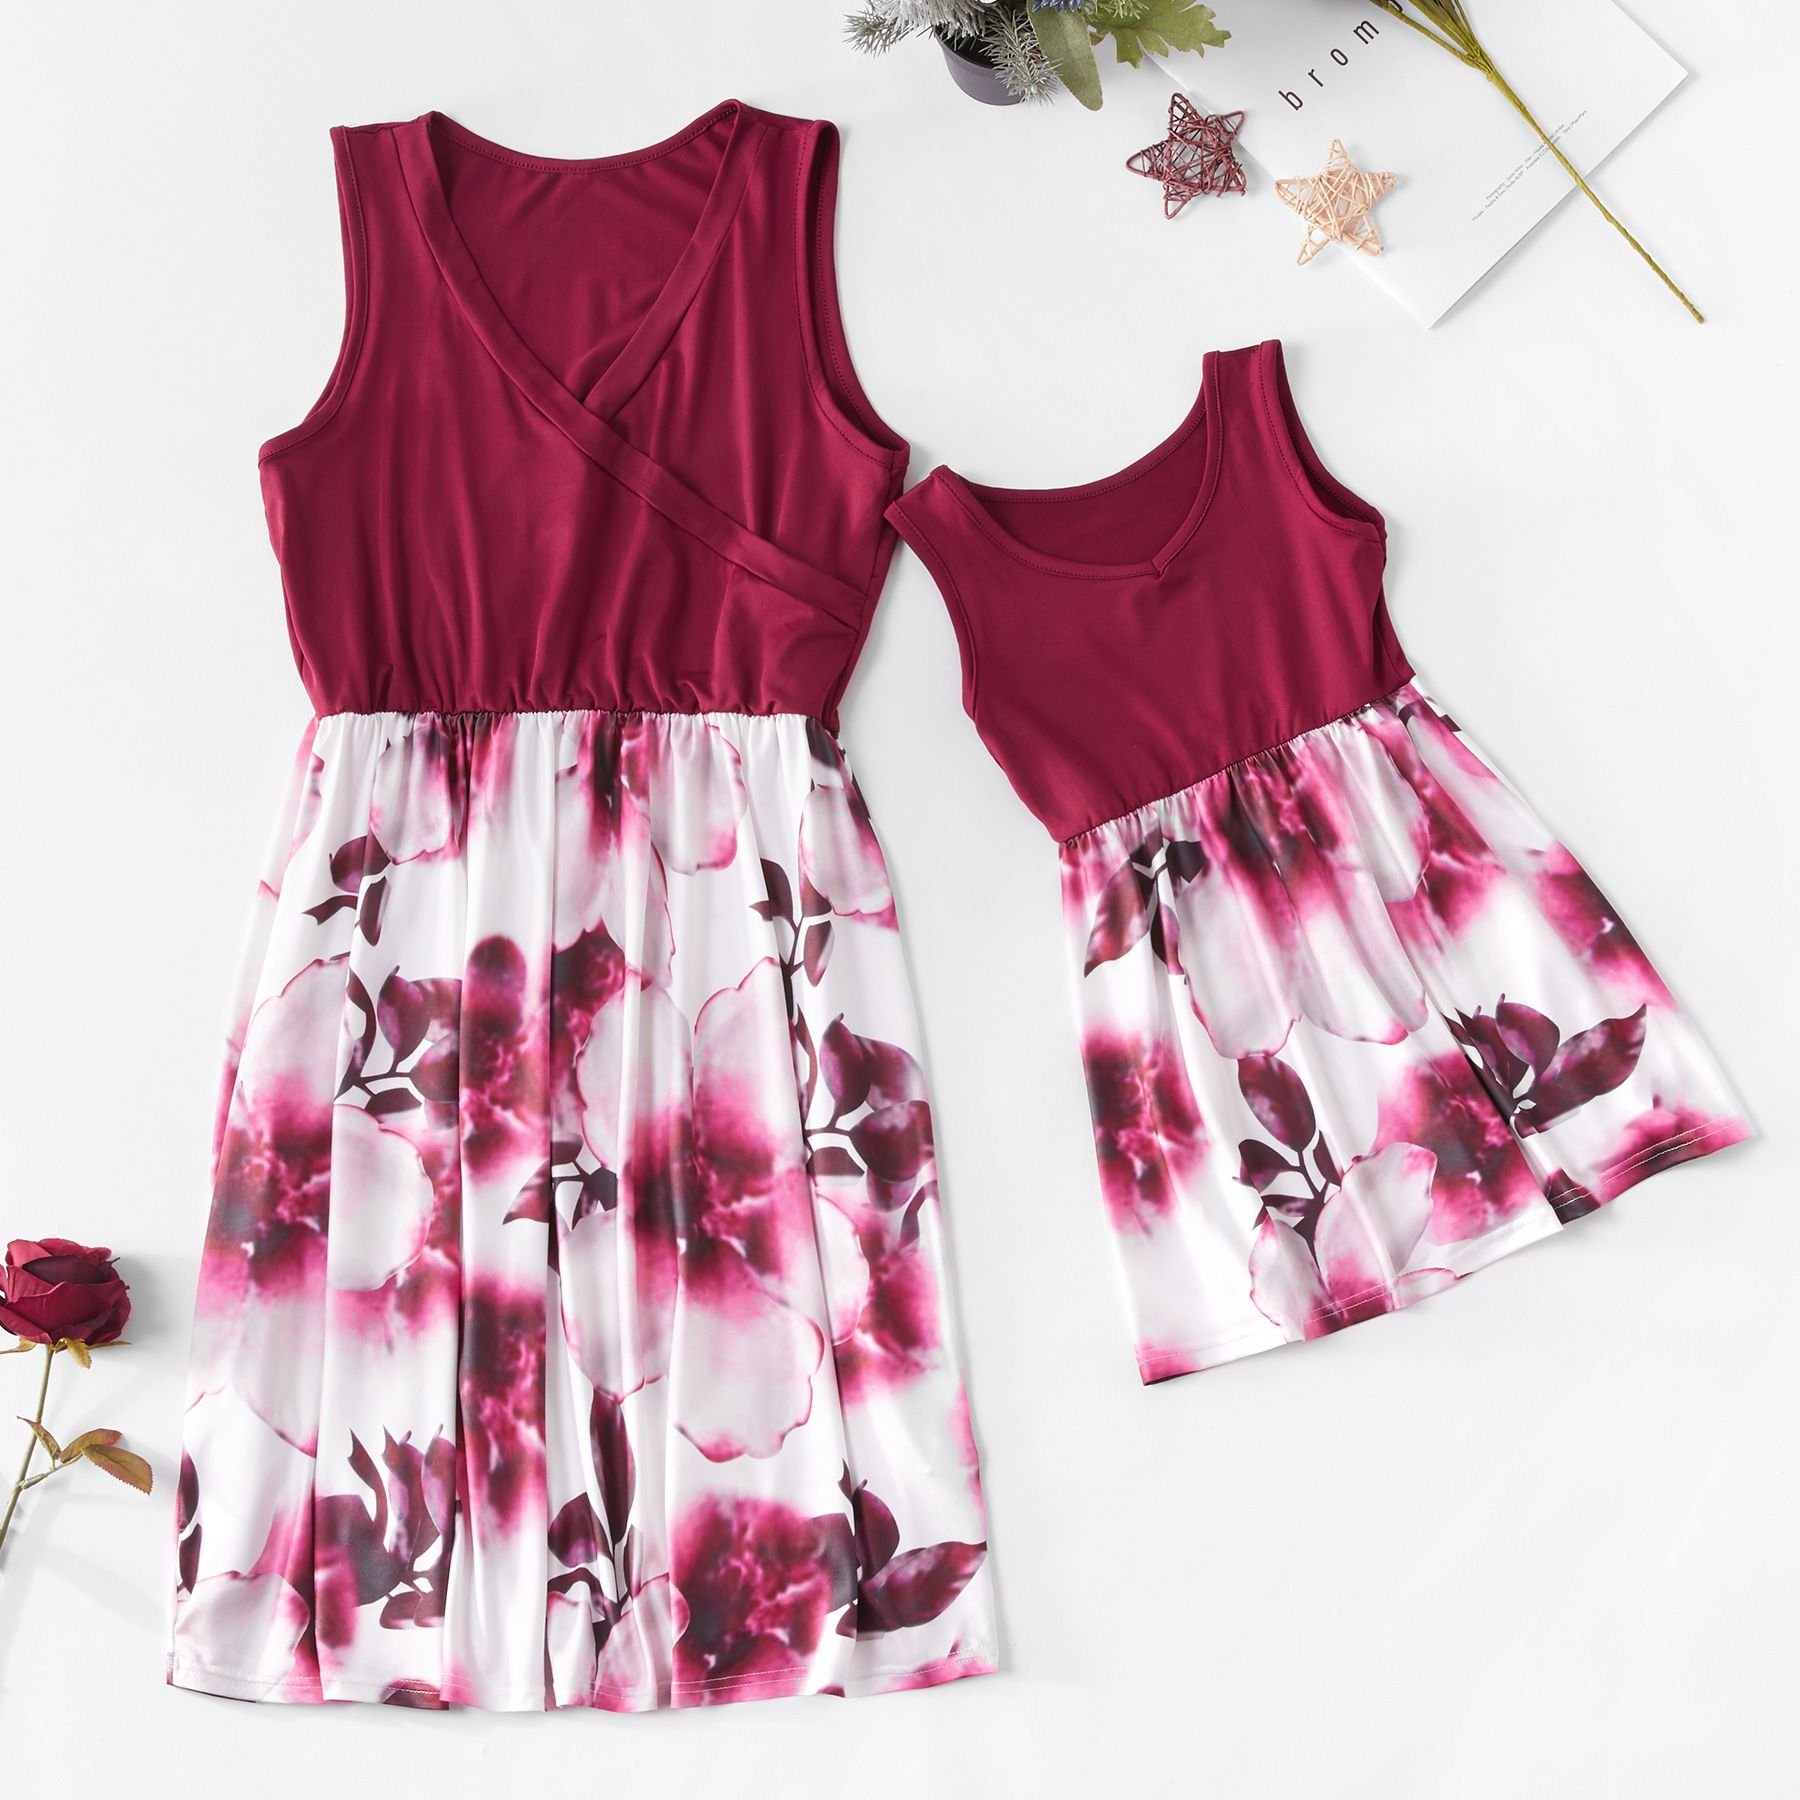 Red Floral Sleeveless Dress for Mommy and Me Mommy, me